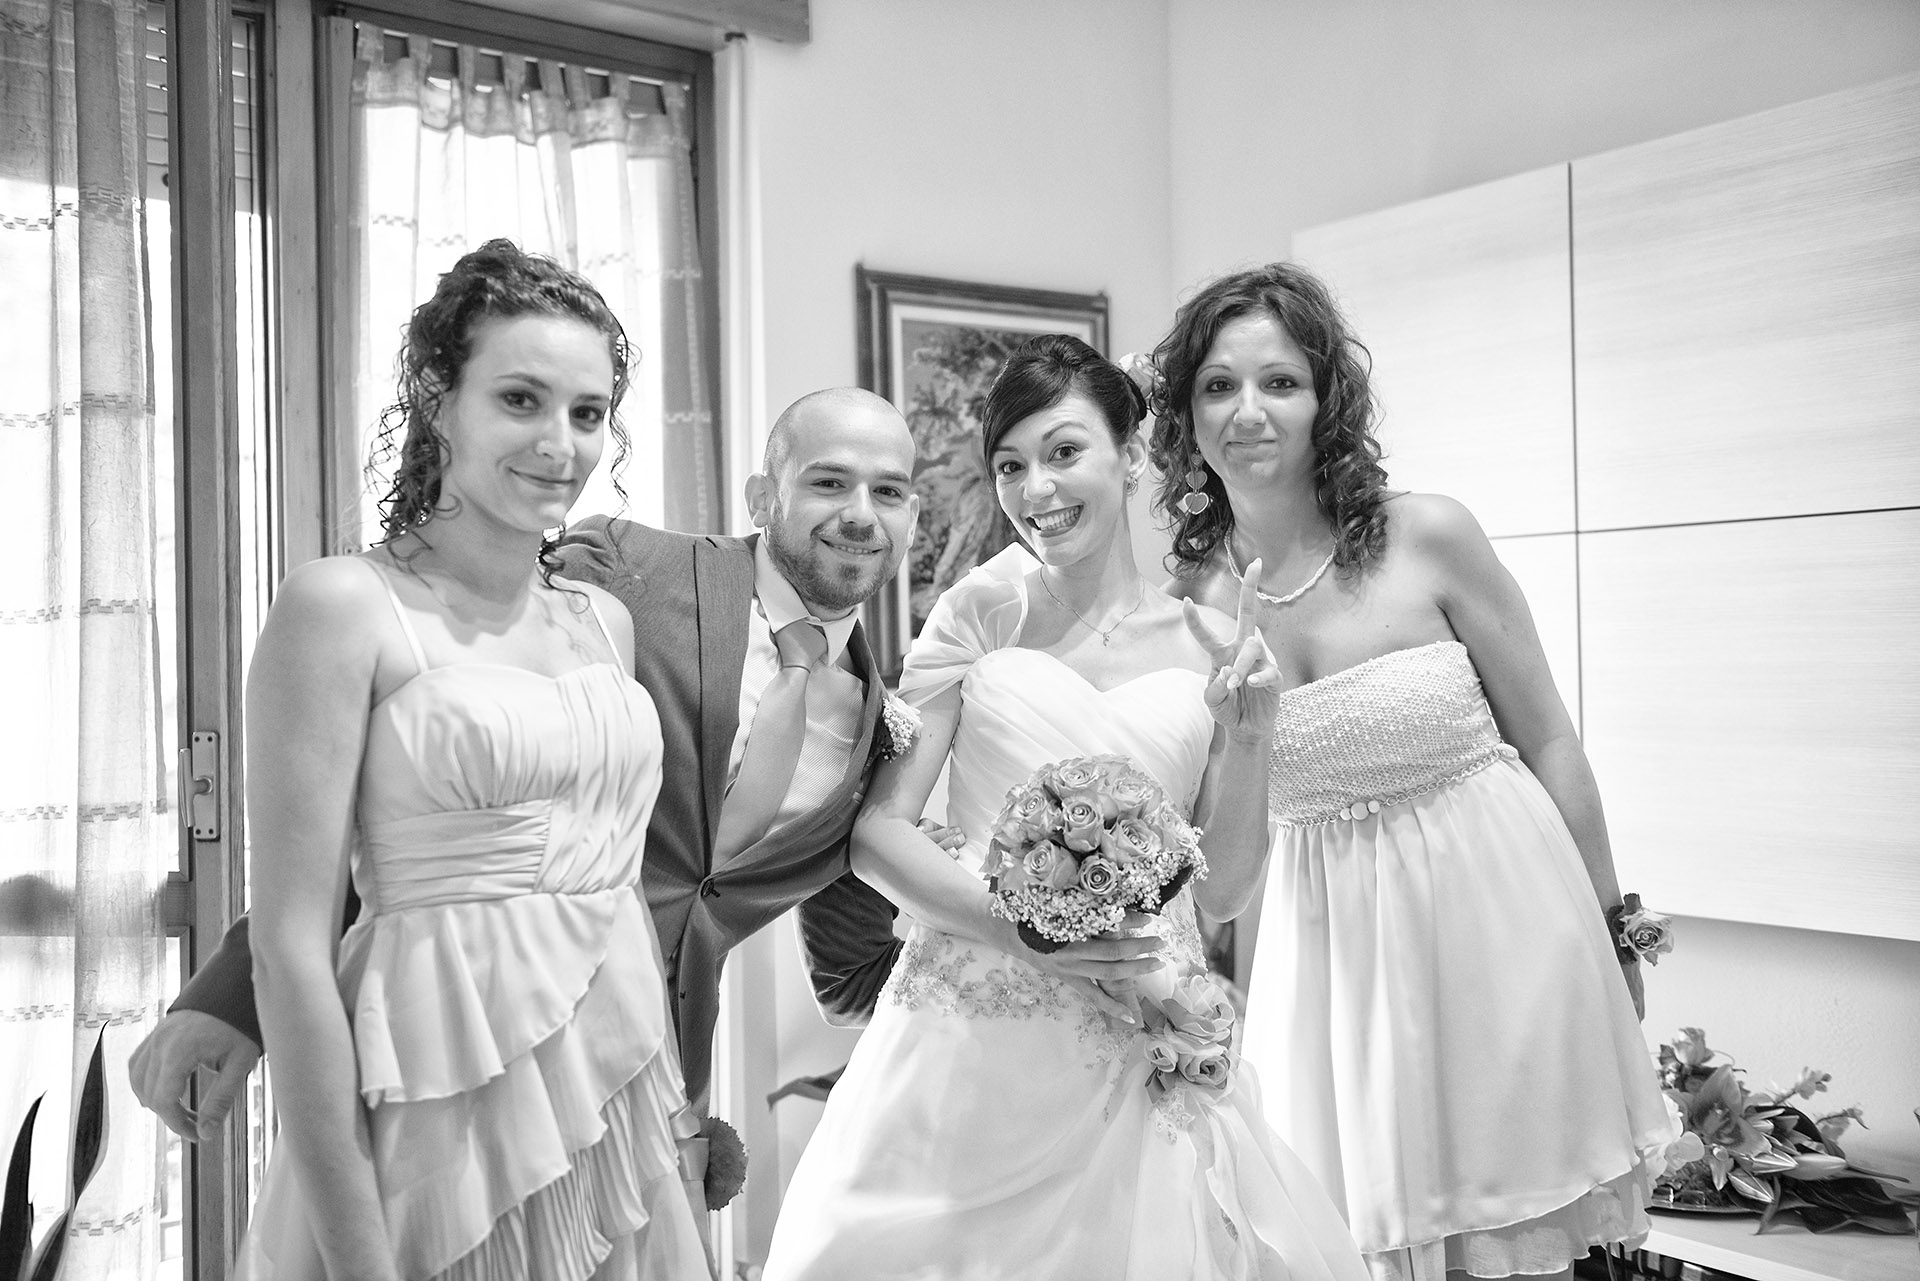 Sara e Luca - Matrimonio a Piossasco (TO) - Wedding reportage in Piossasco (TO)